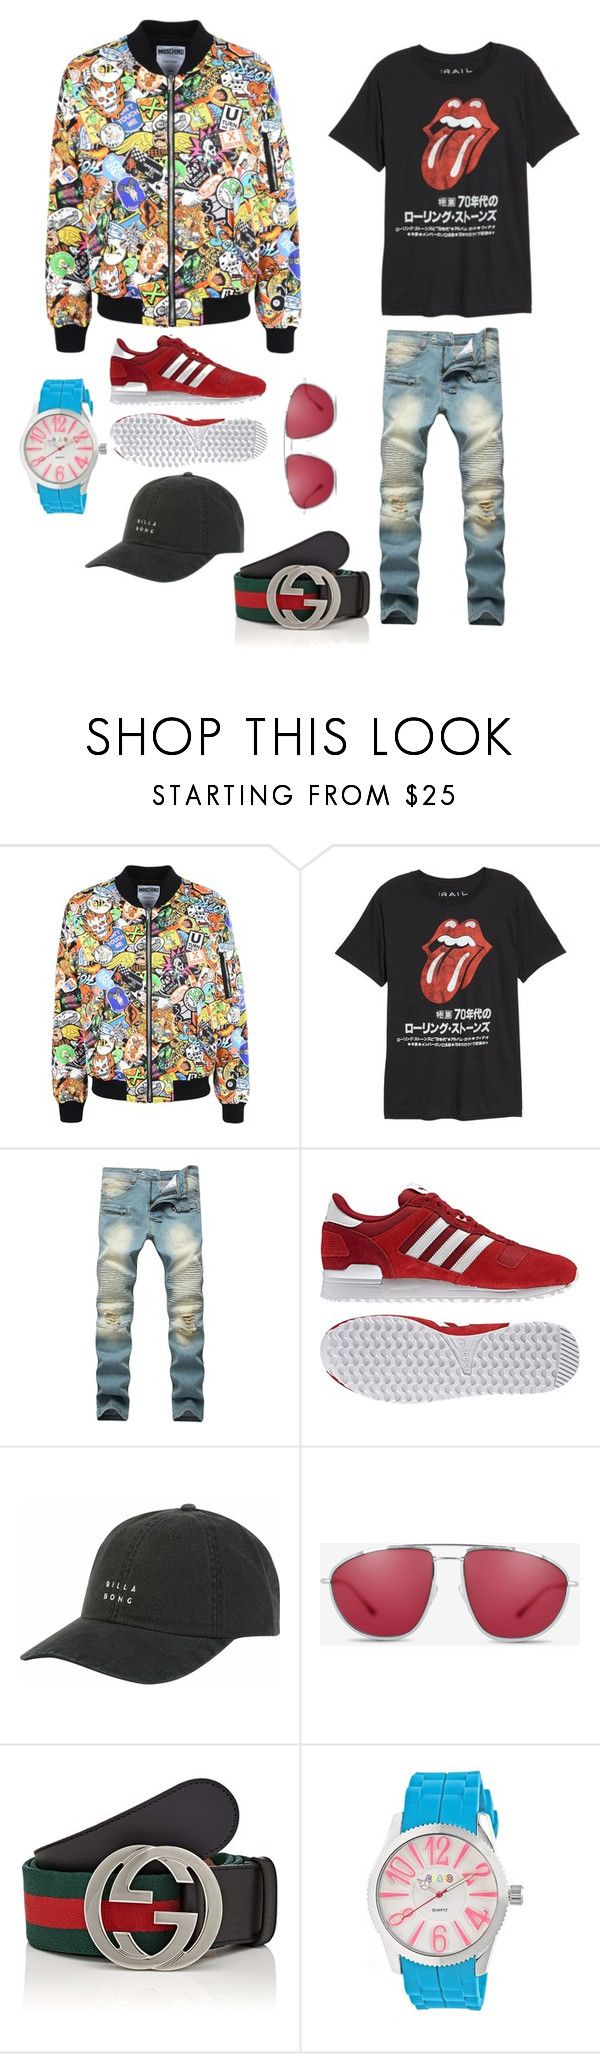 """Vitor Felisberto"" by madalenacaetano on Polyvore featuring Moschino, Public Opinion, adidas, Billabong, Bally, Gucci, Crayo, men's fashion and menswear"